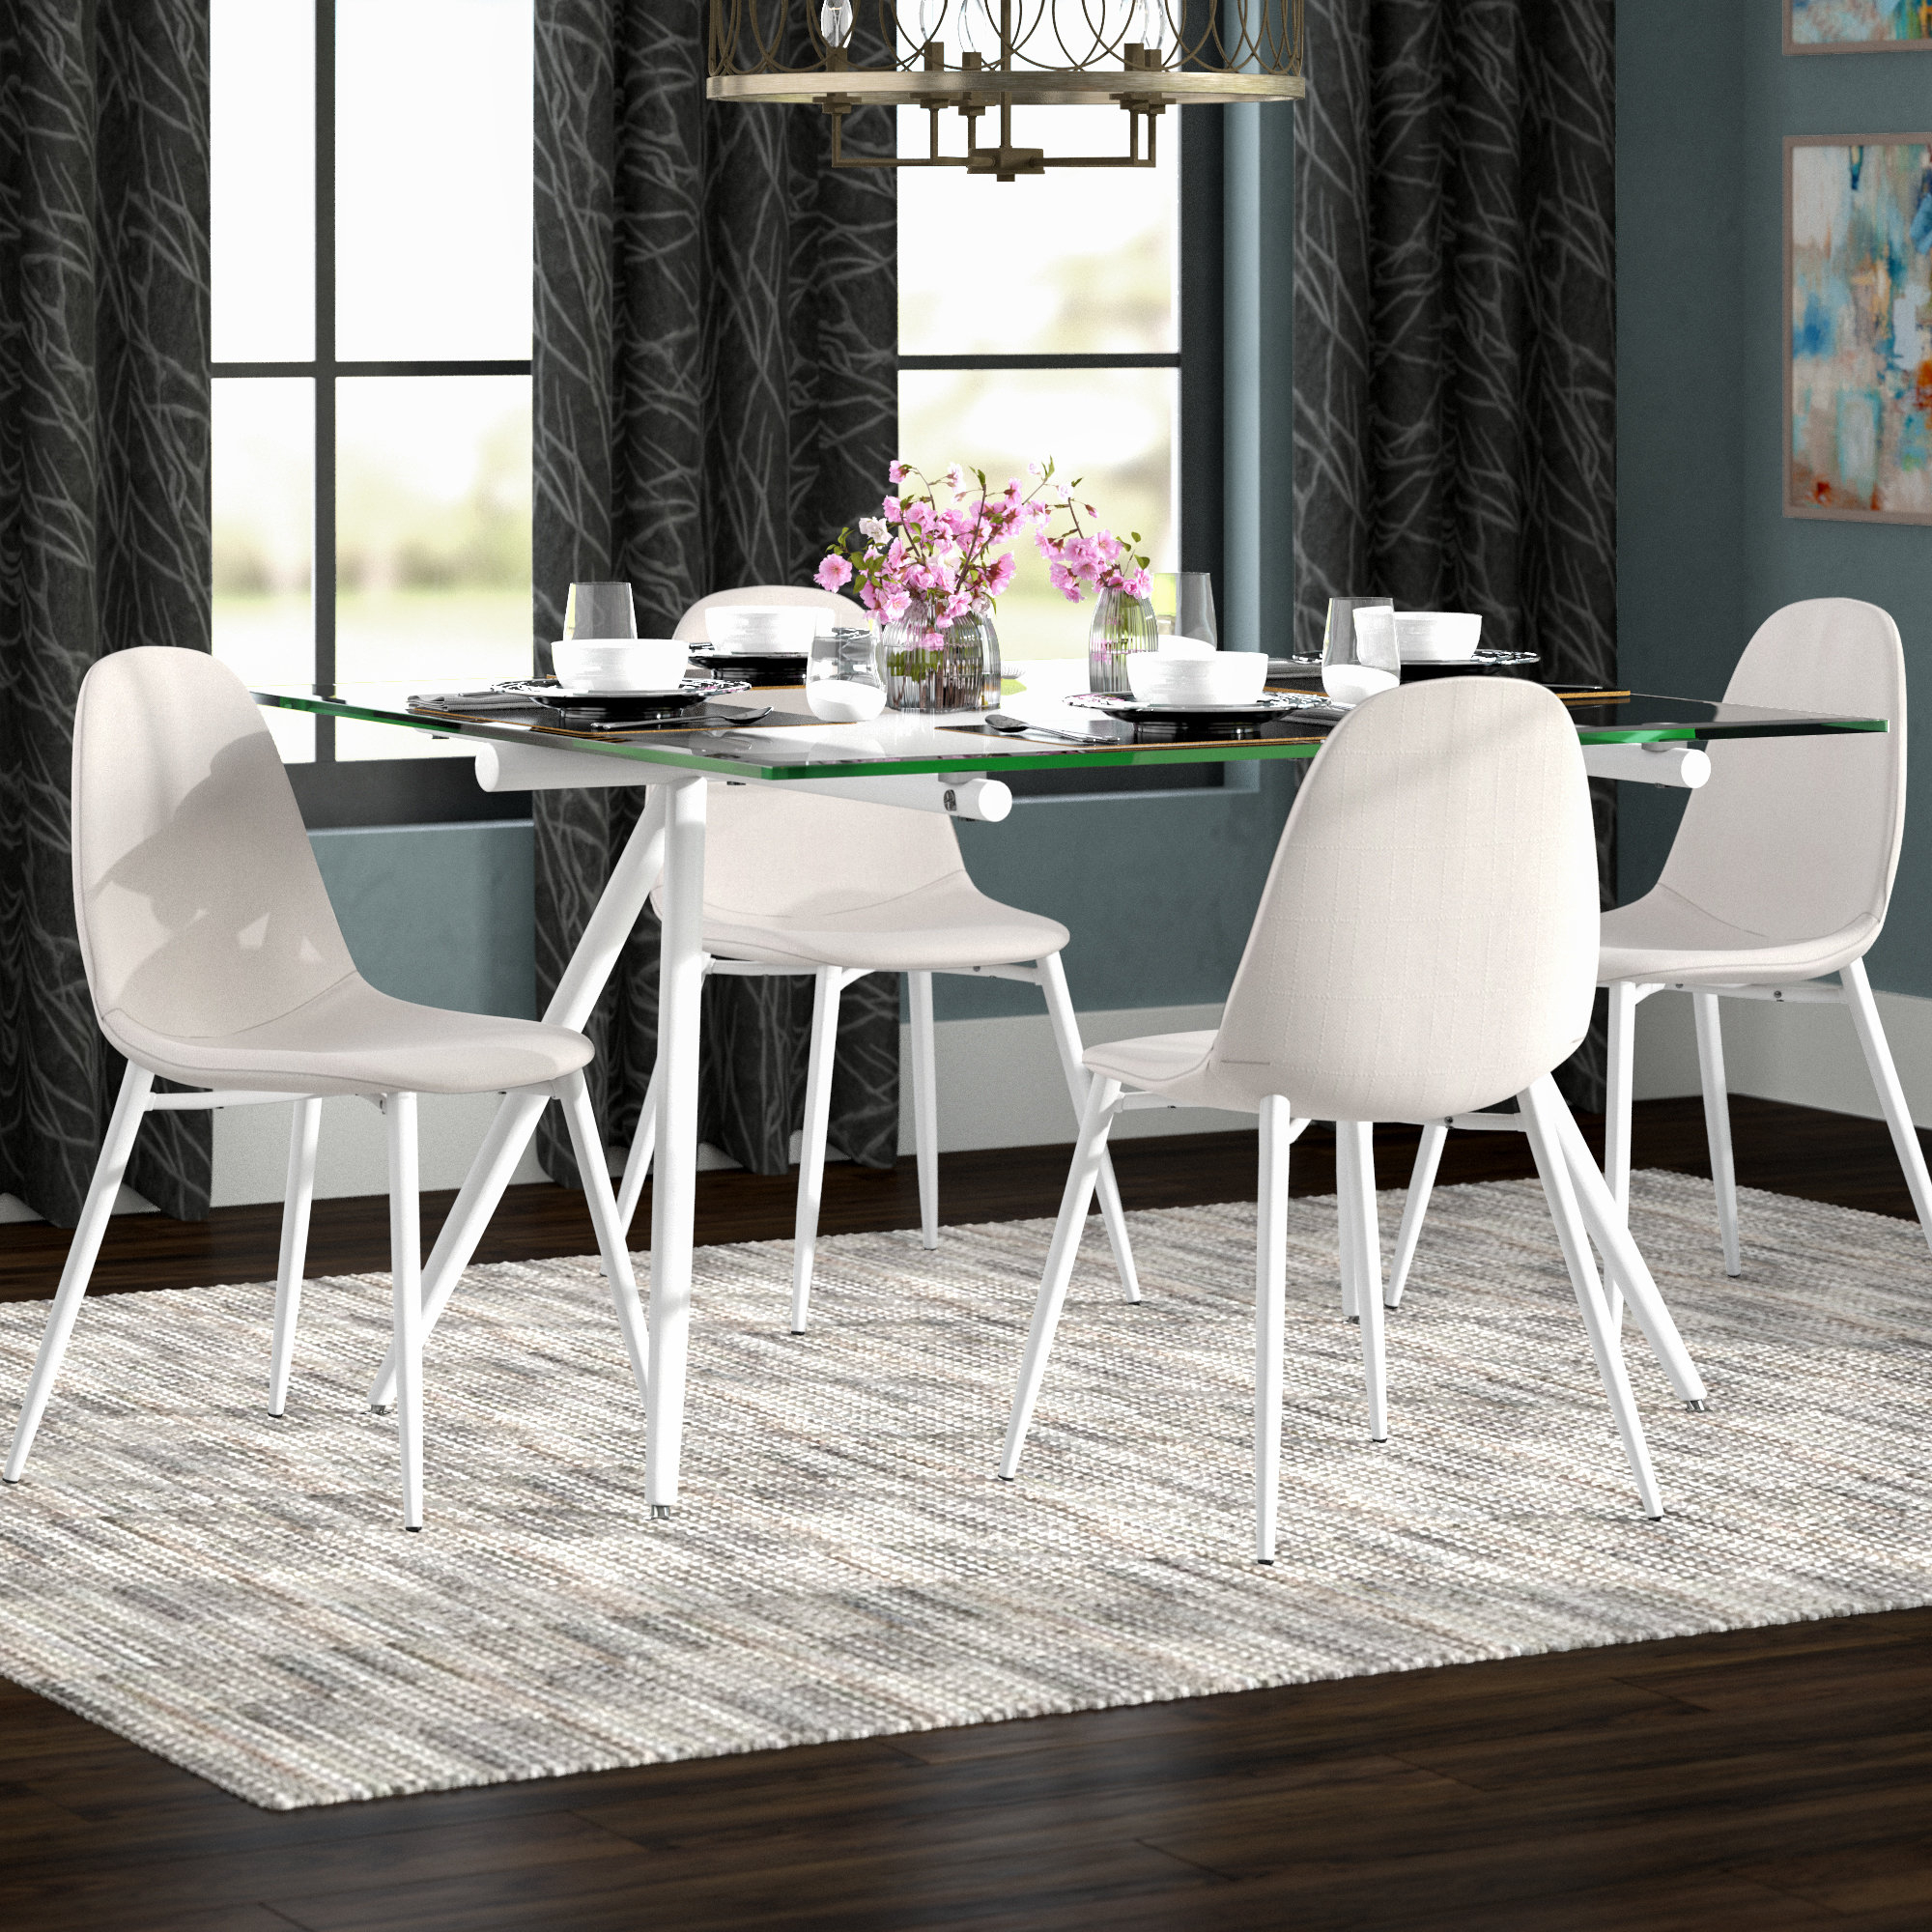 Noyes 5 Piece Dining Sets With Well Known Woodhouse 5 Piece Dining Set (View 13 of 20)